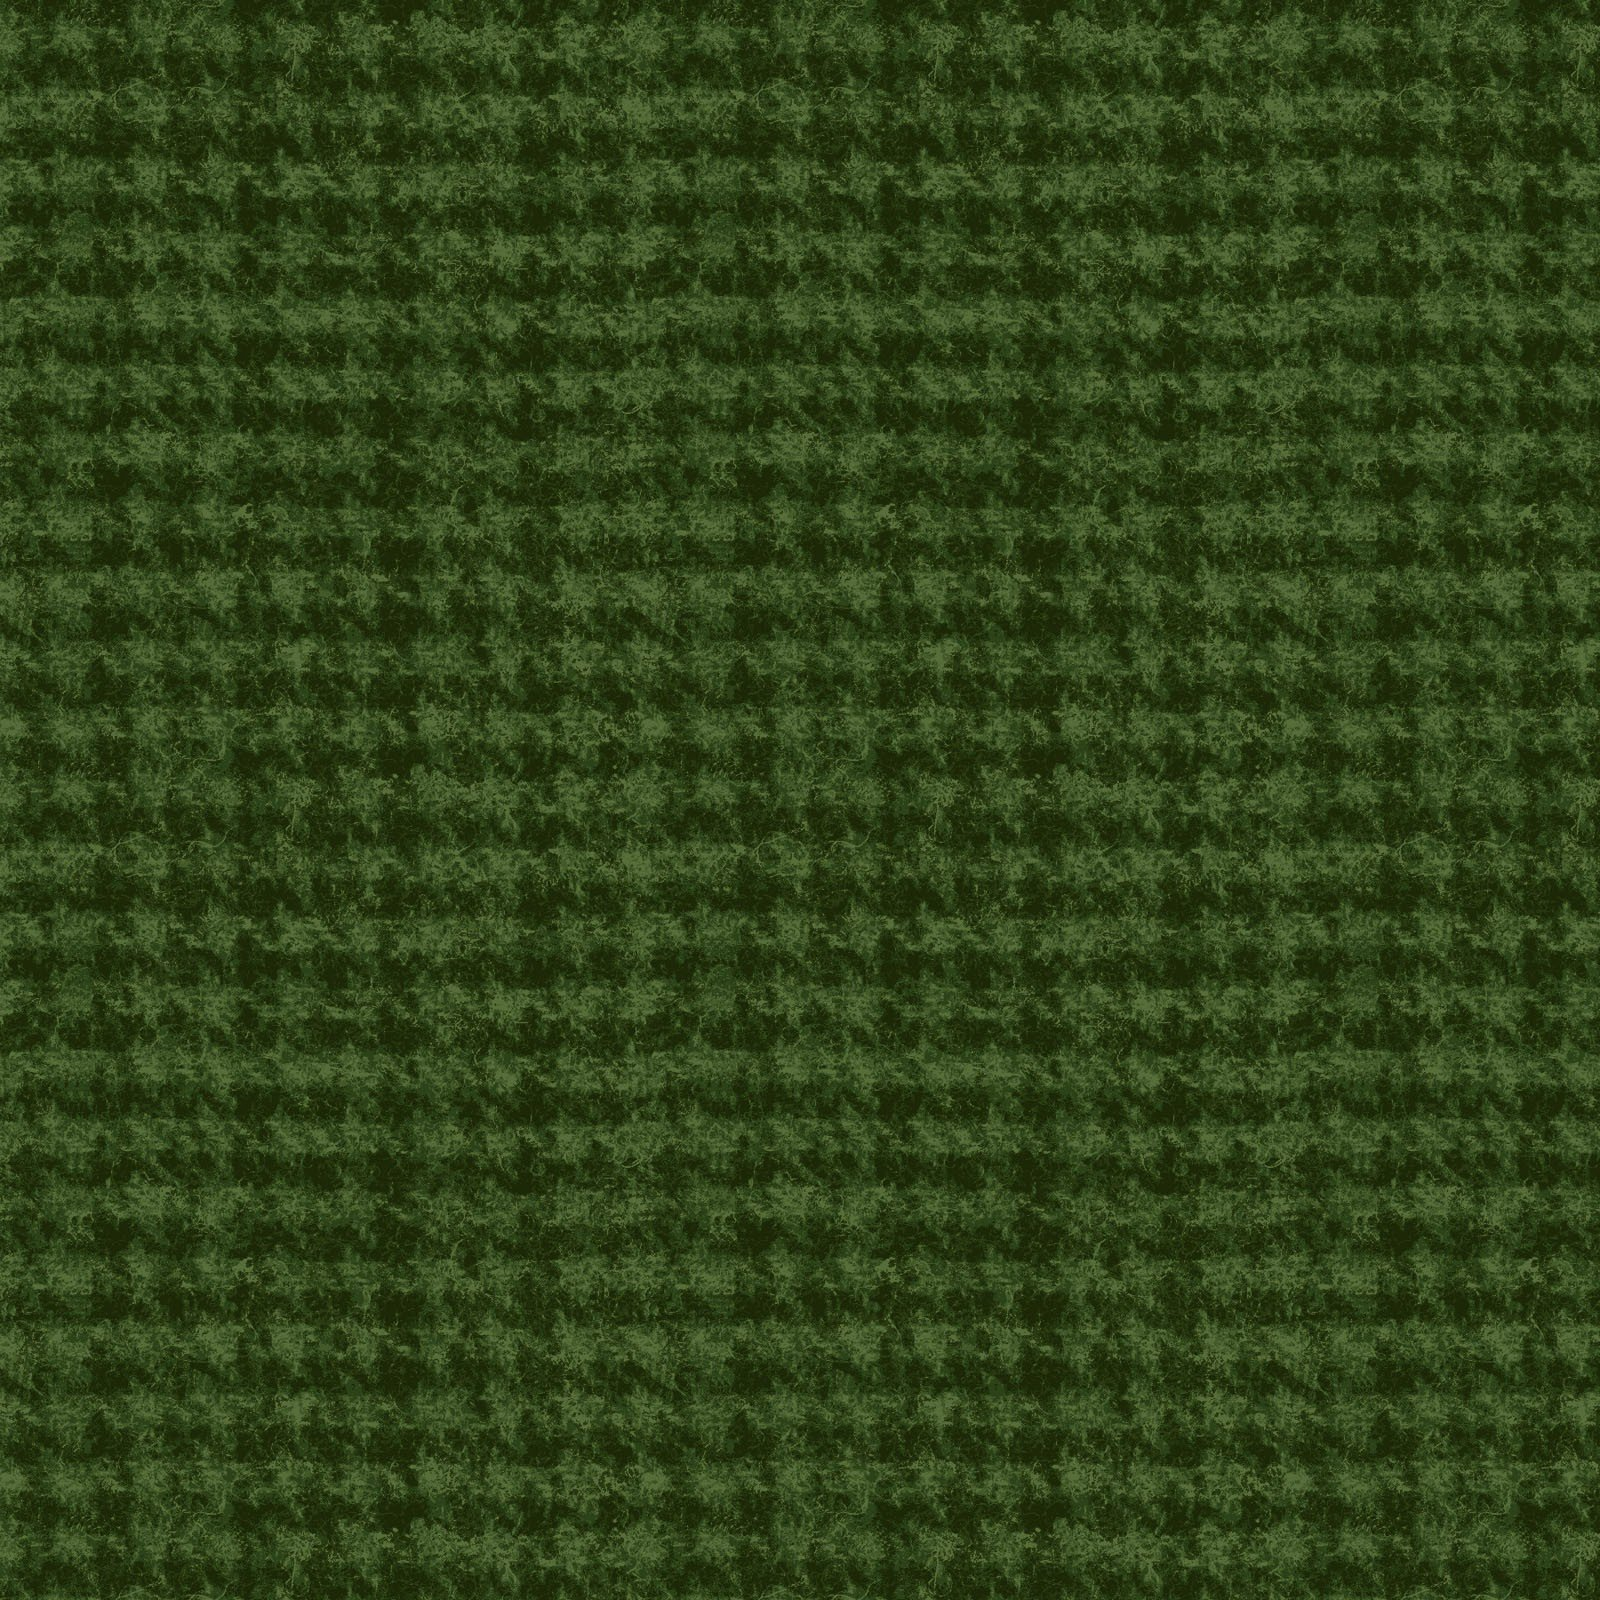 Woolies Flannel Houndstooth Dark Green (MASF18503-G2)